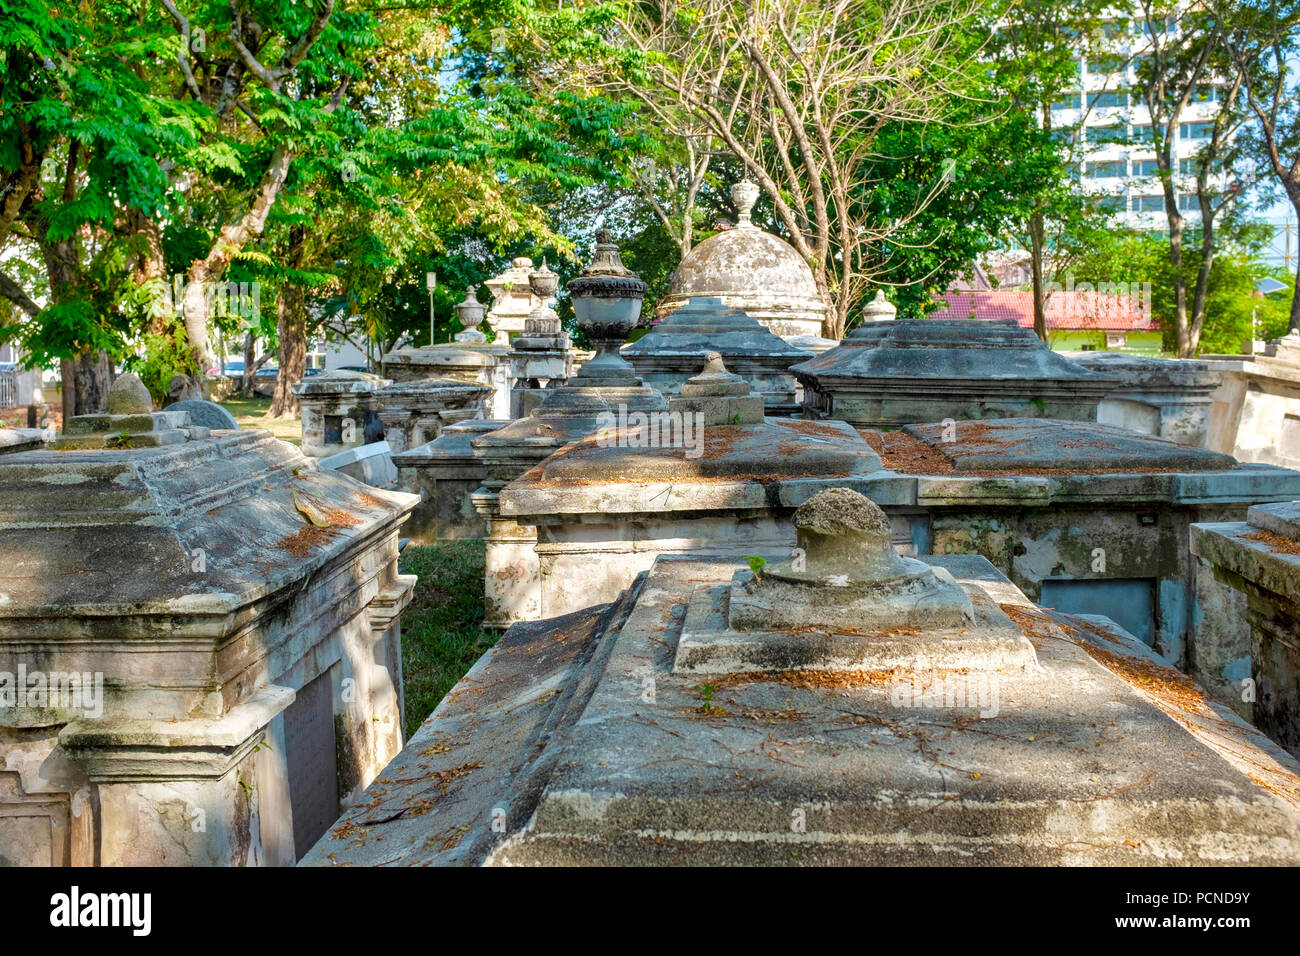 Old Protestant Cemetery, George Town, Penang, Malaysia - Stock Image